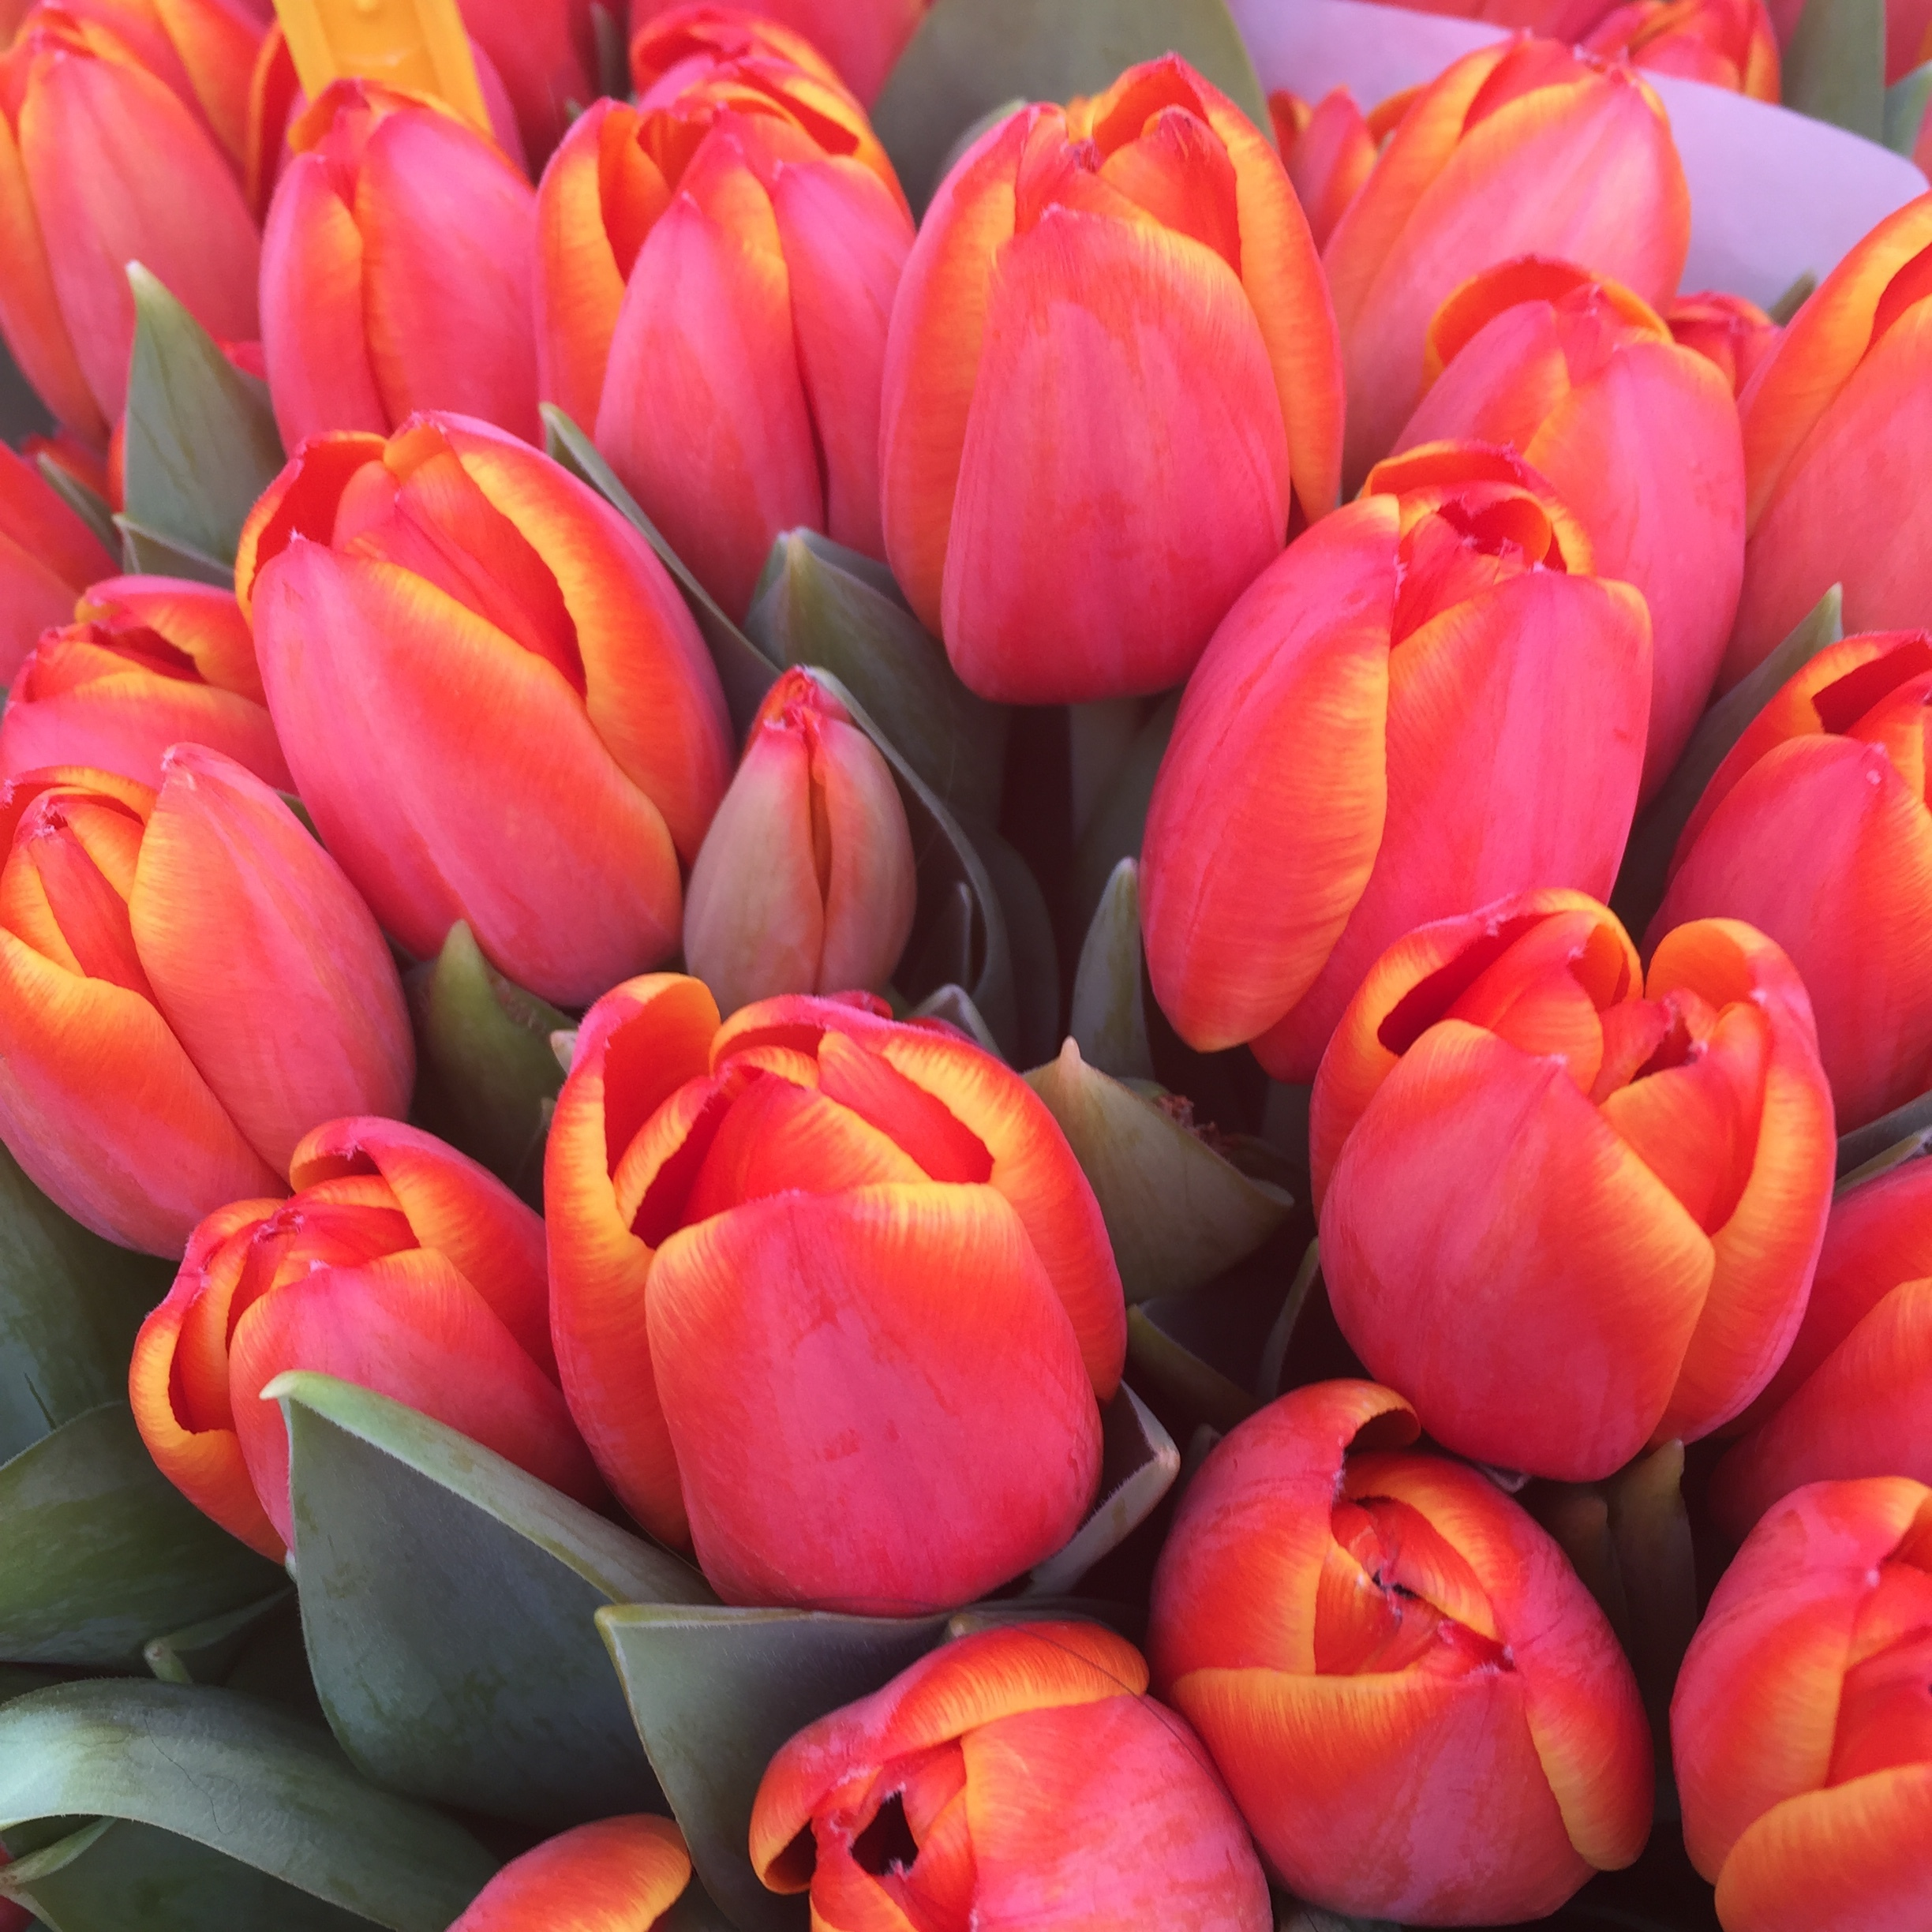 My favorite yellow-tipped red tulips for sale in Amsterdam's Albert Cuypmarkt.